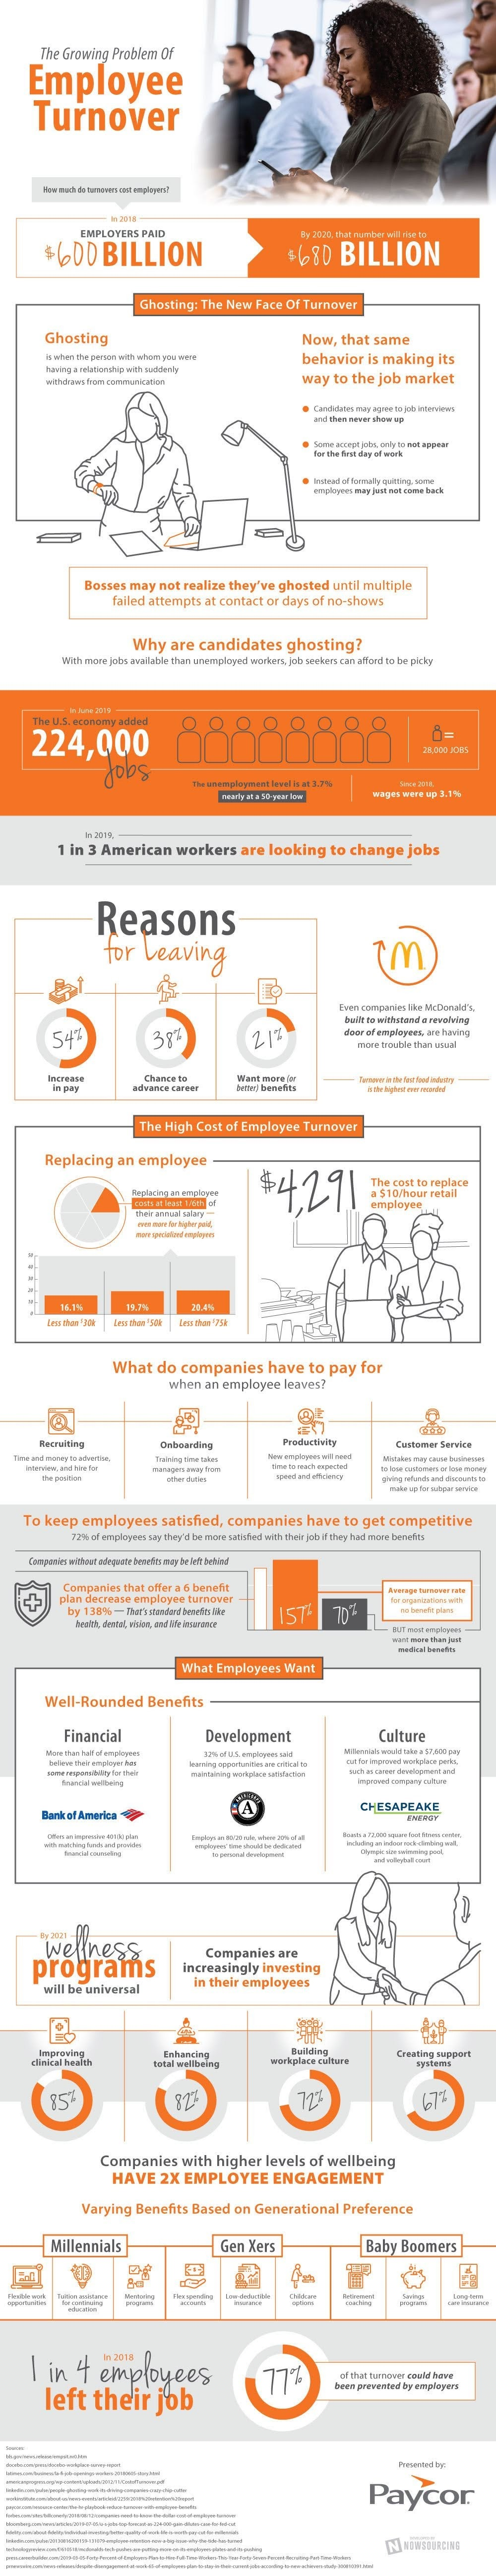 The Growing Problem Of Employee Turnover #infographic